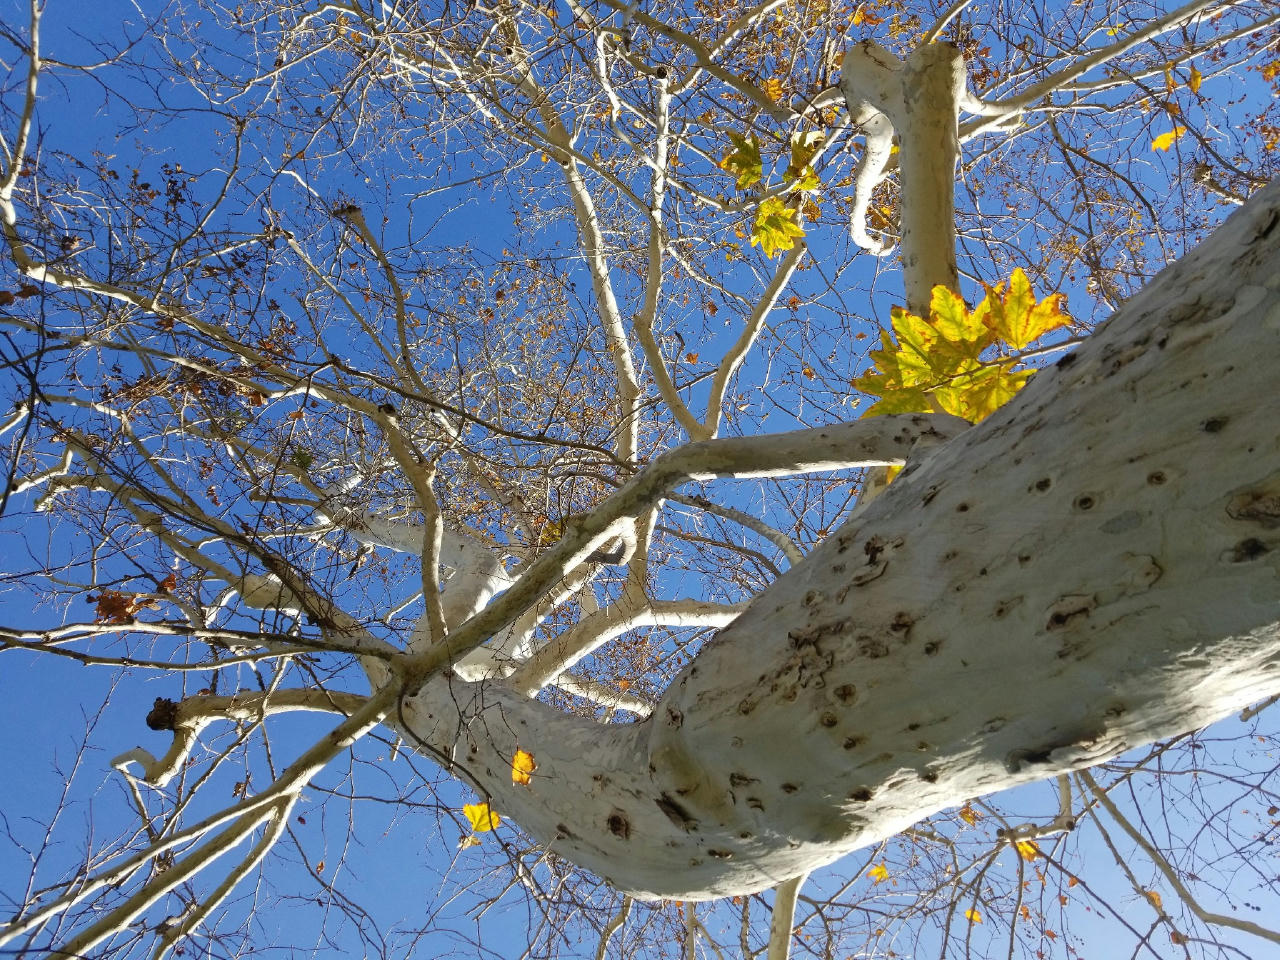 View looking up toward a clear blue sky through mostly bare branches above. A couple of yellow leaves still attached